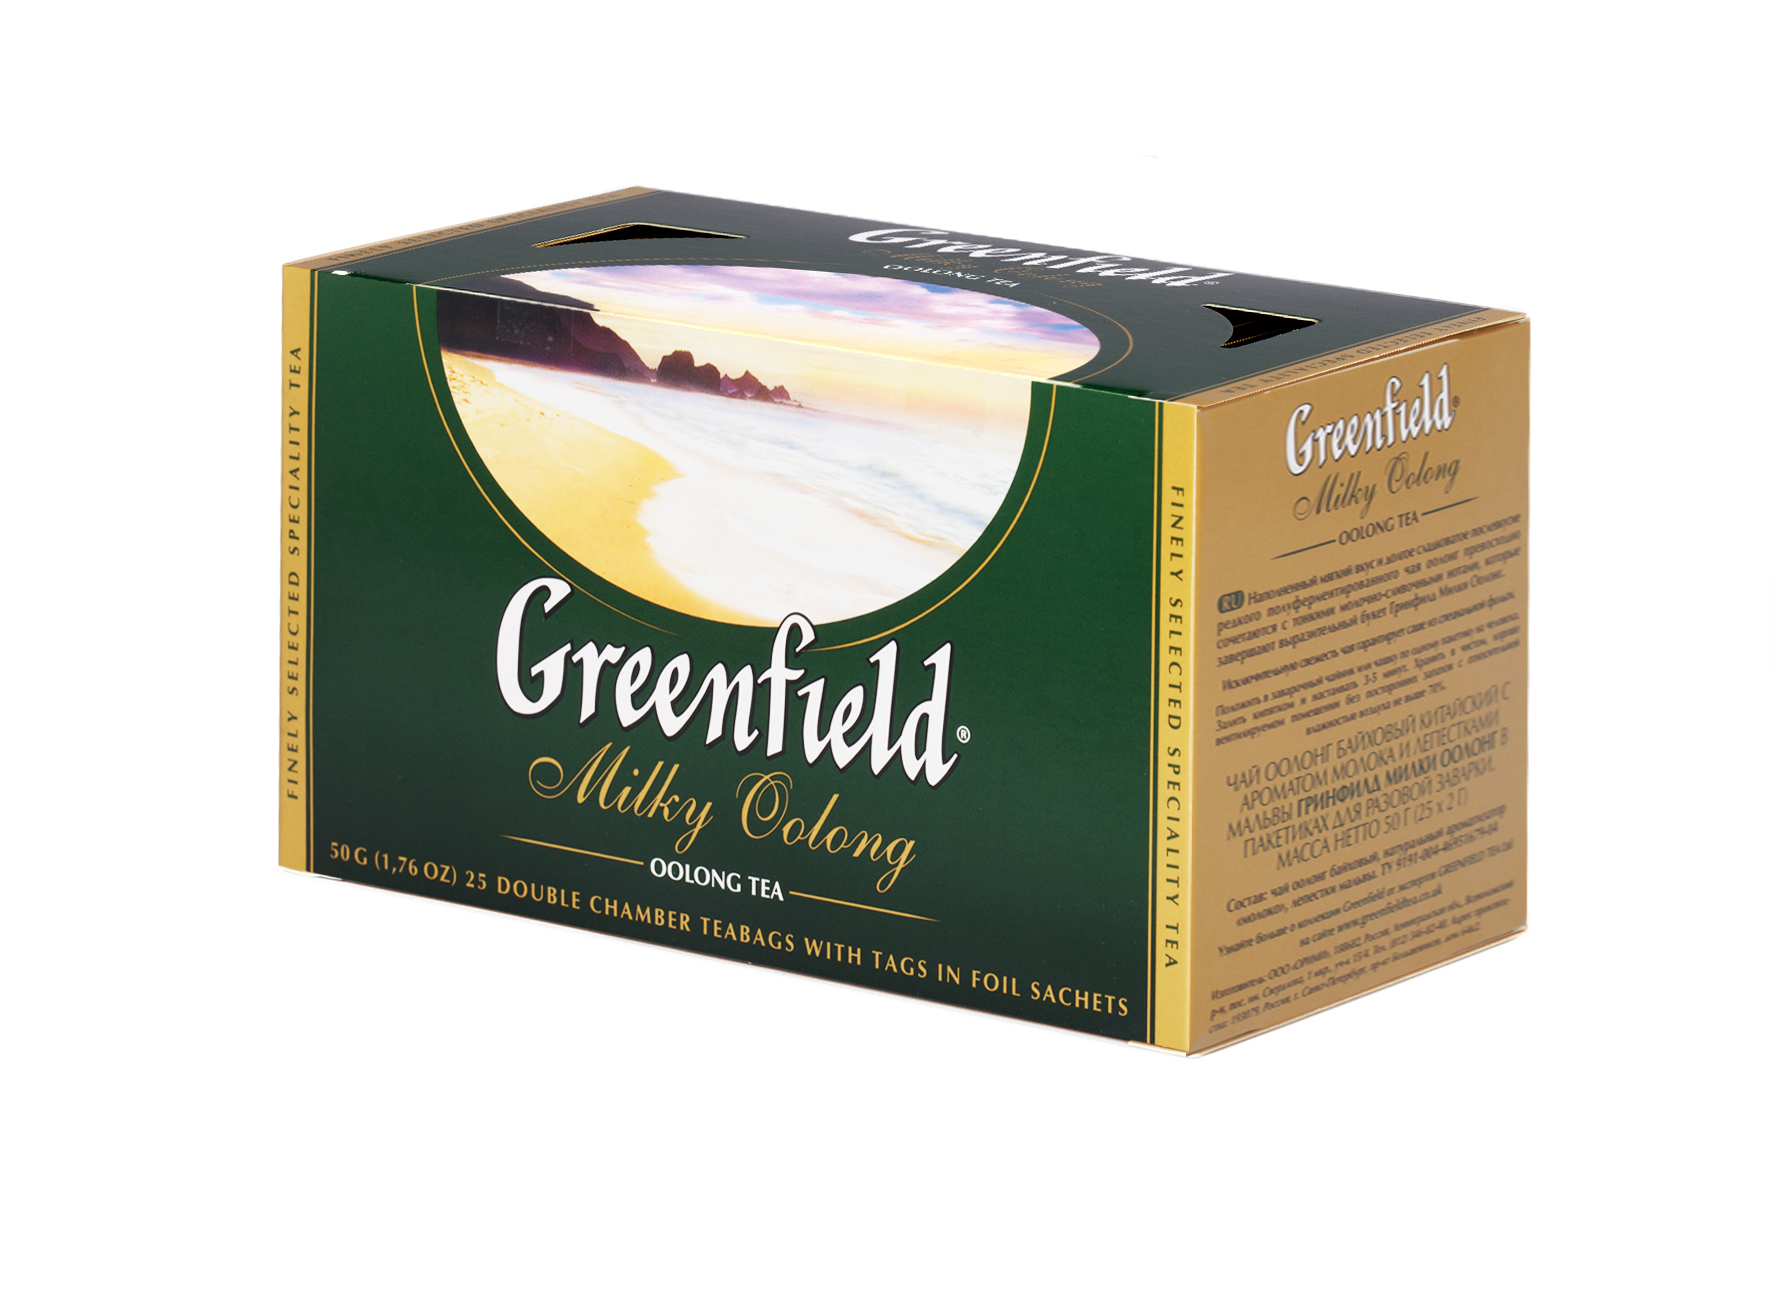 Milky Oolong greenfield